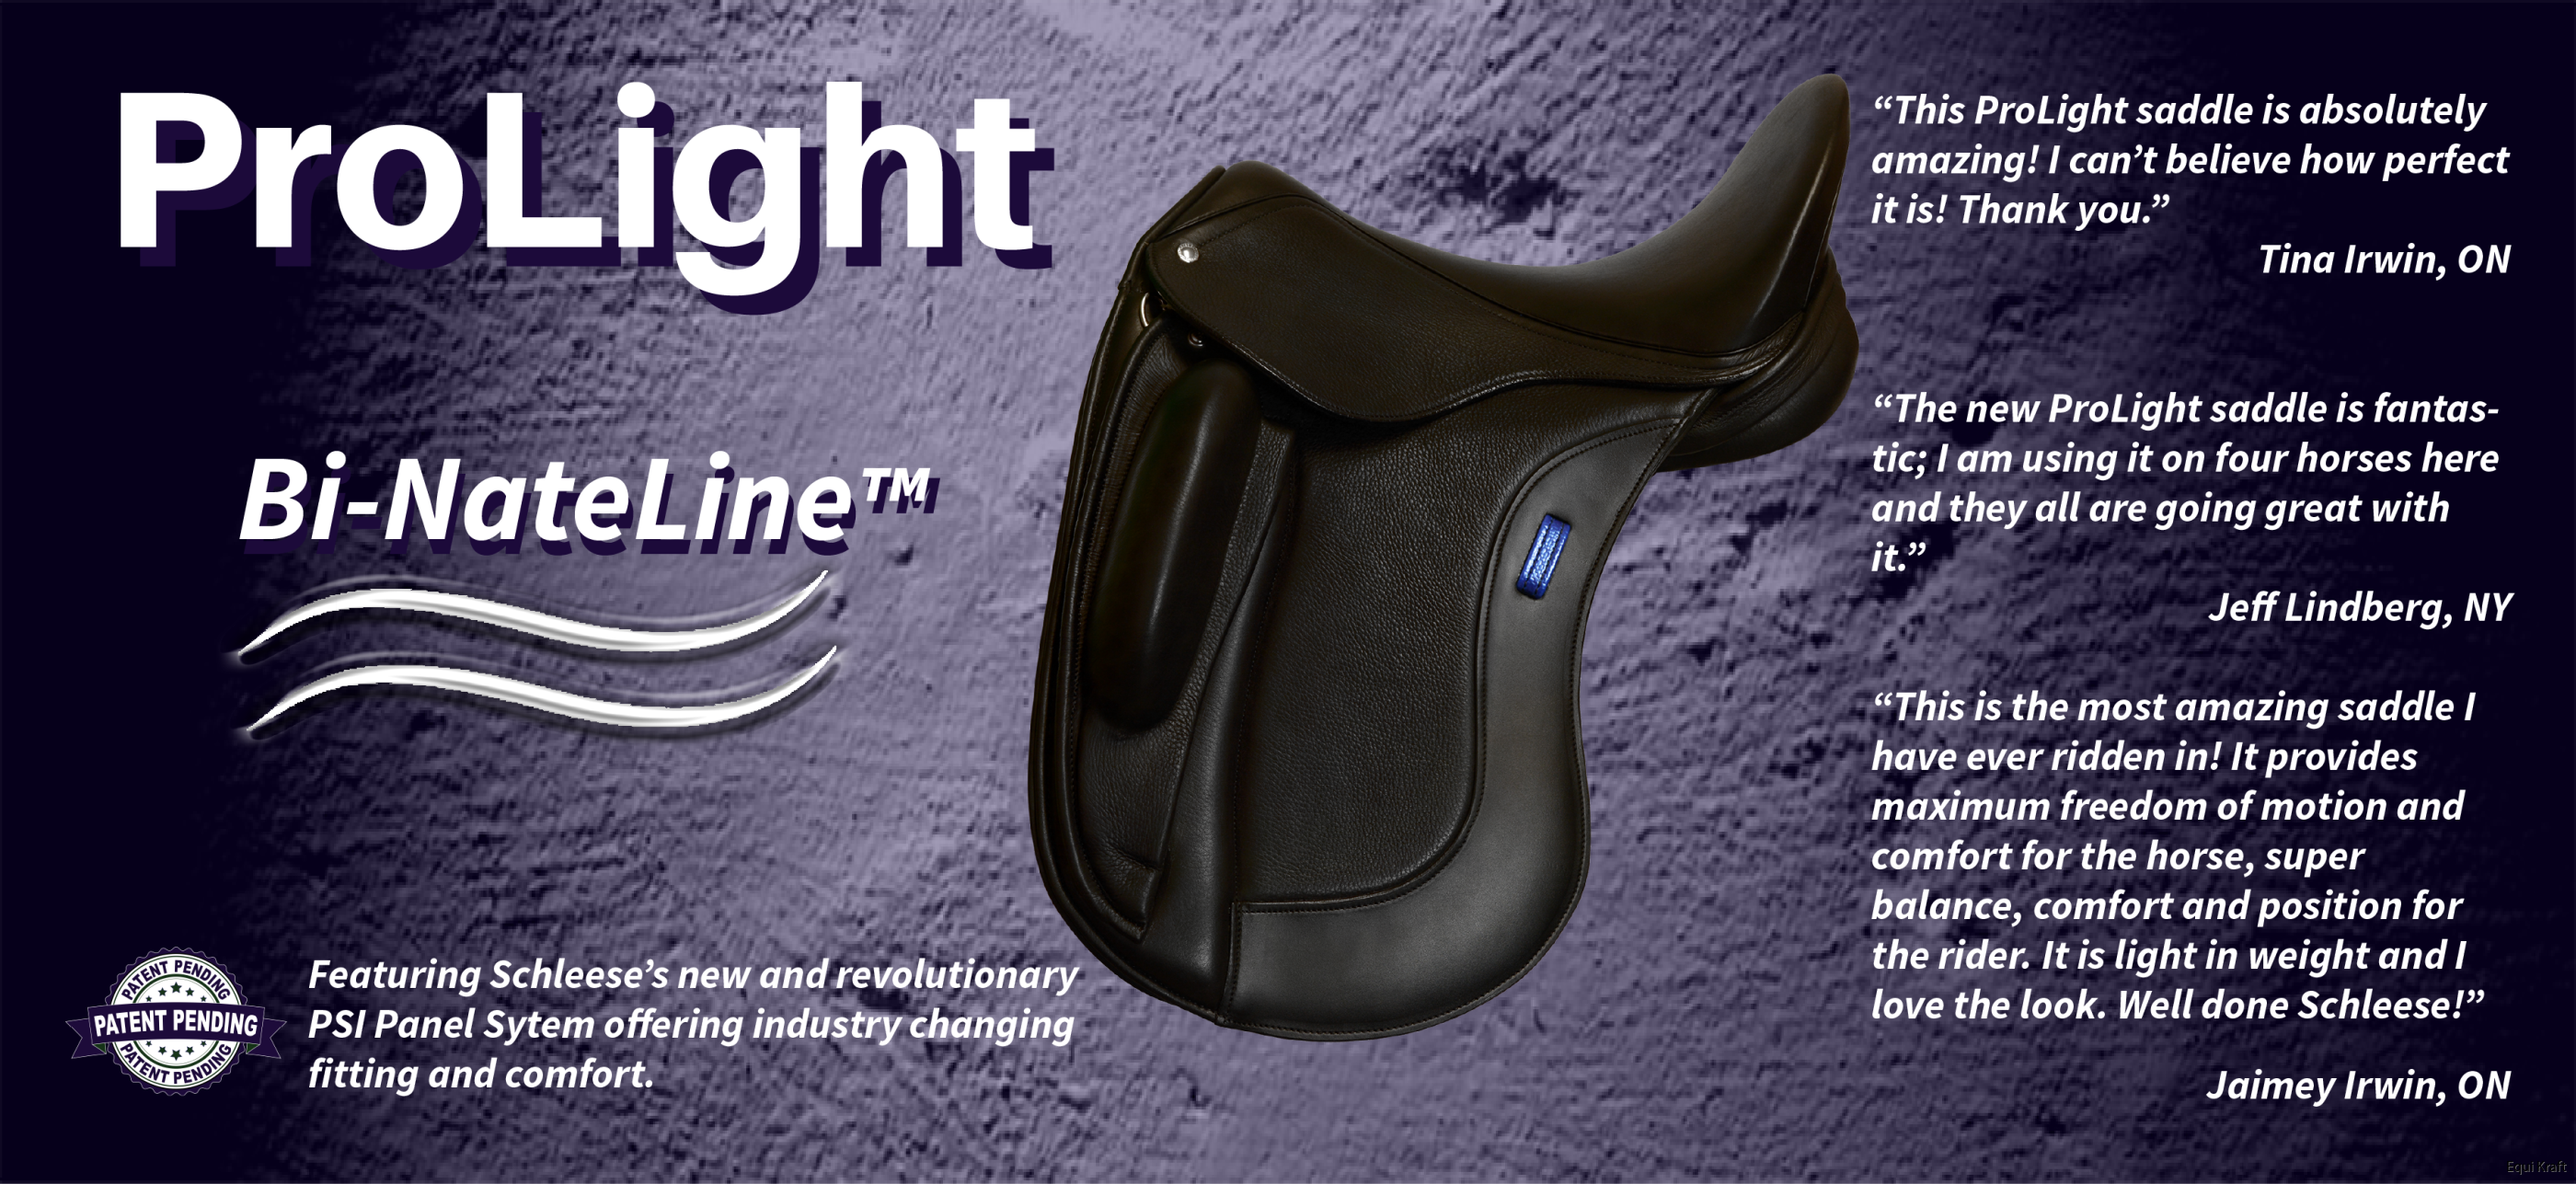 Prolight-Bi-NateLine-Front-Page-Banner-with-quotes